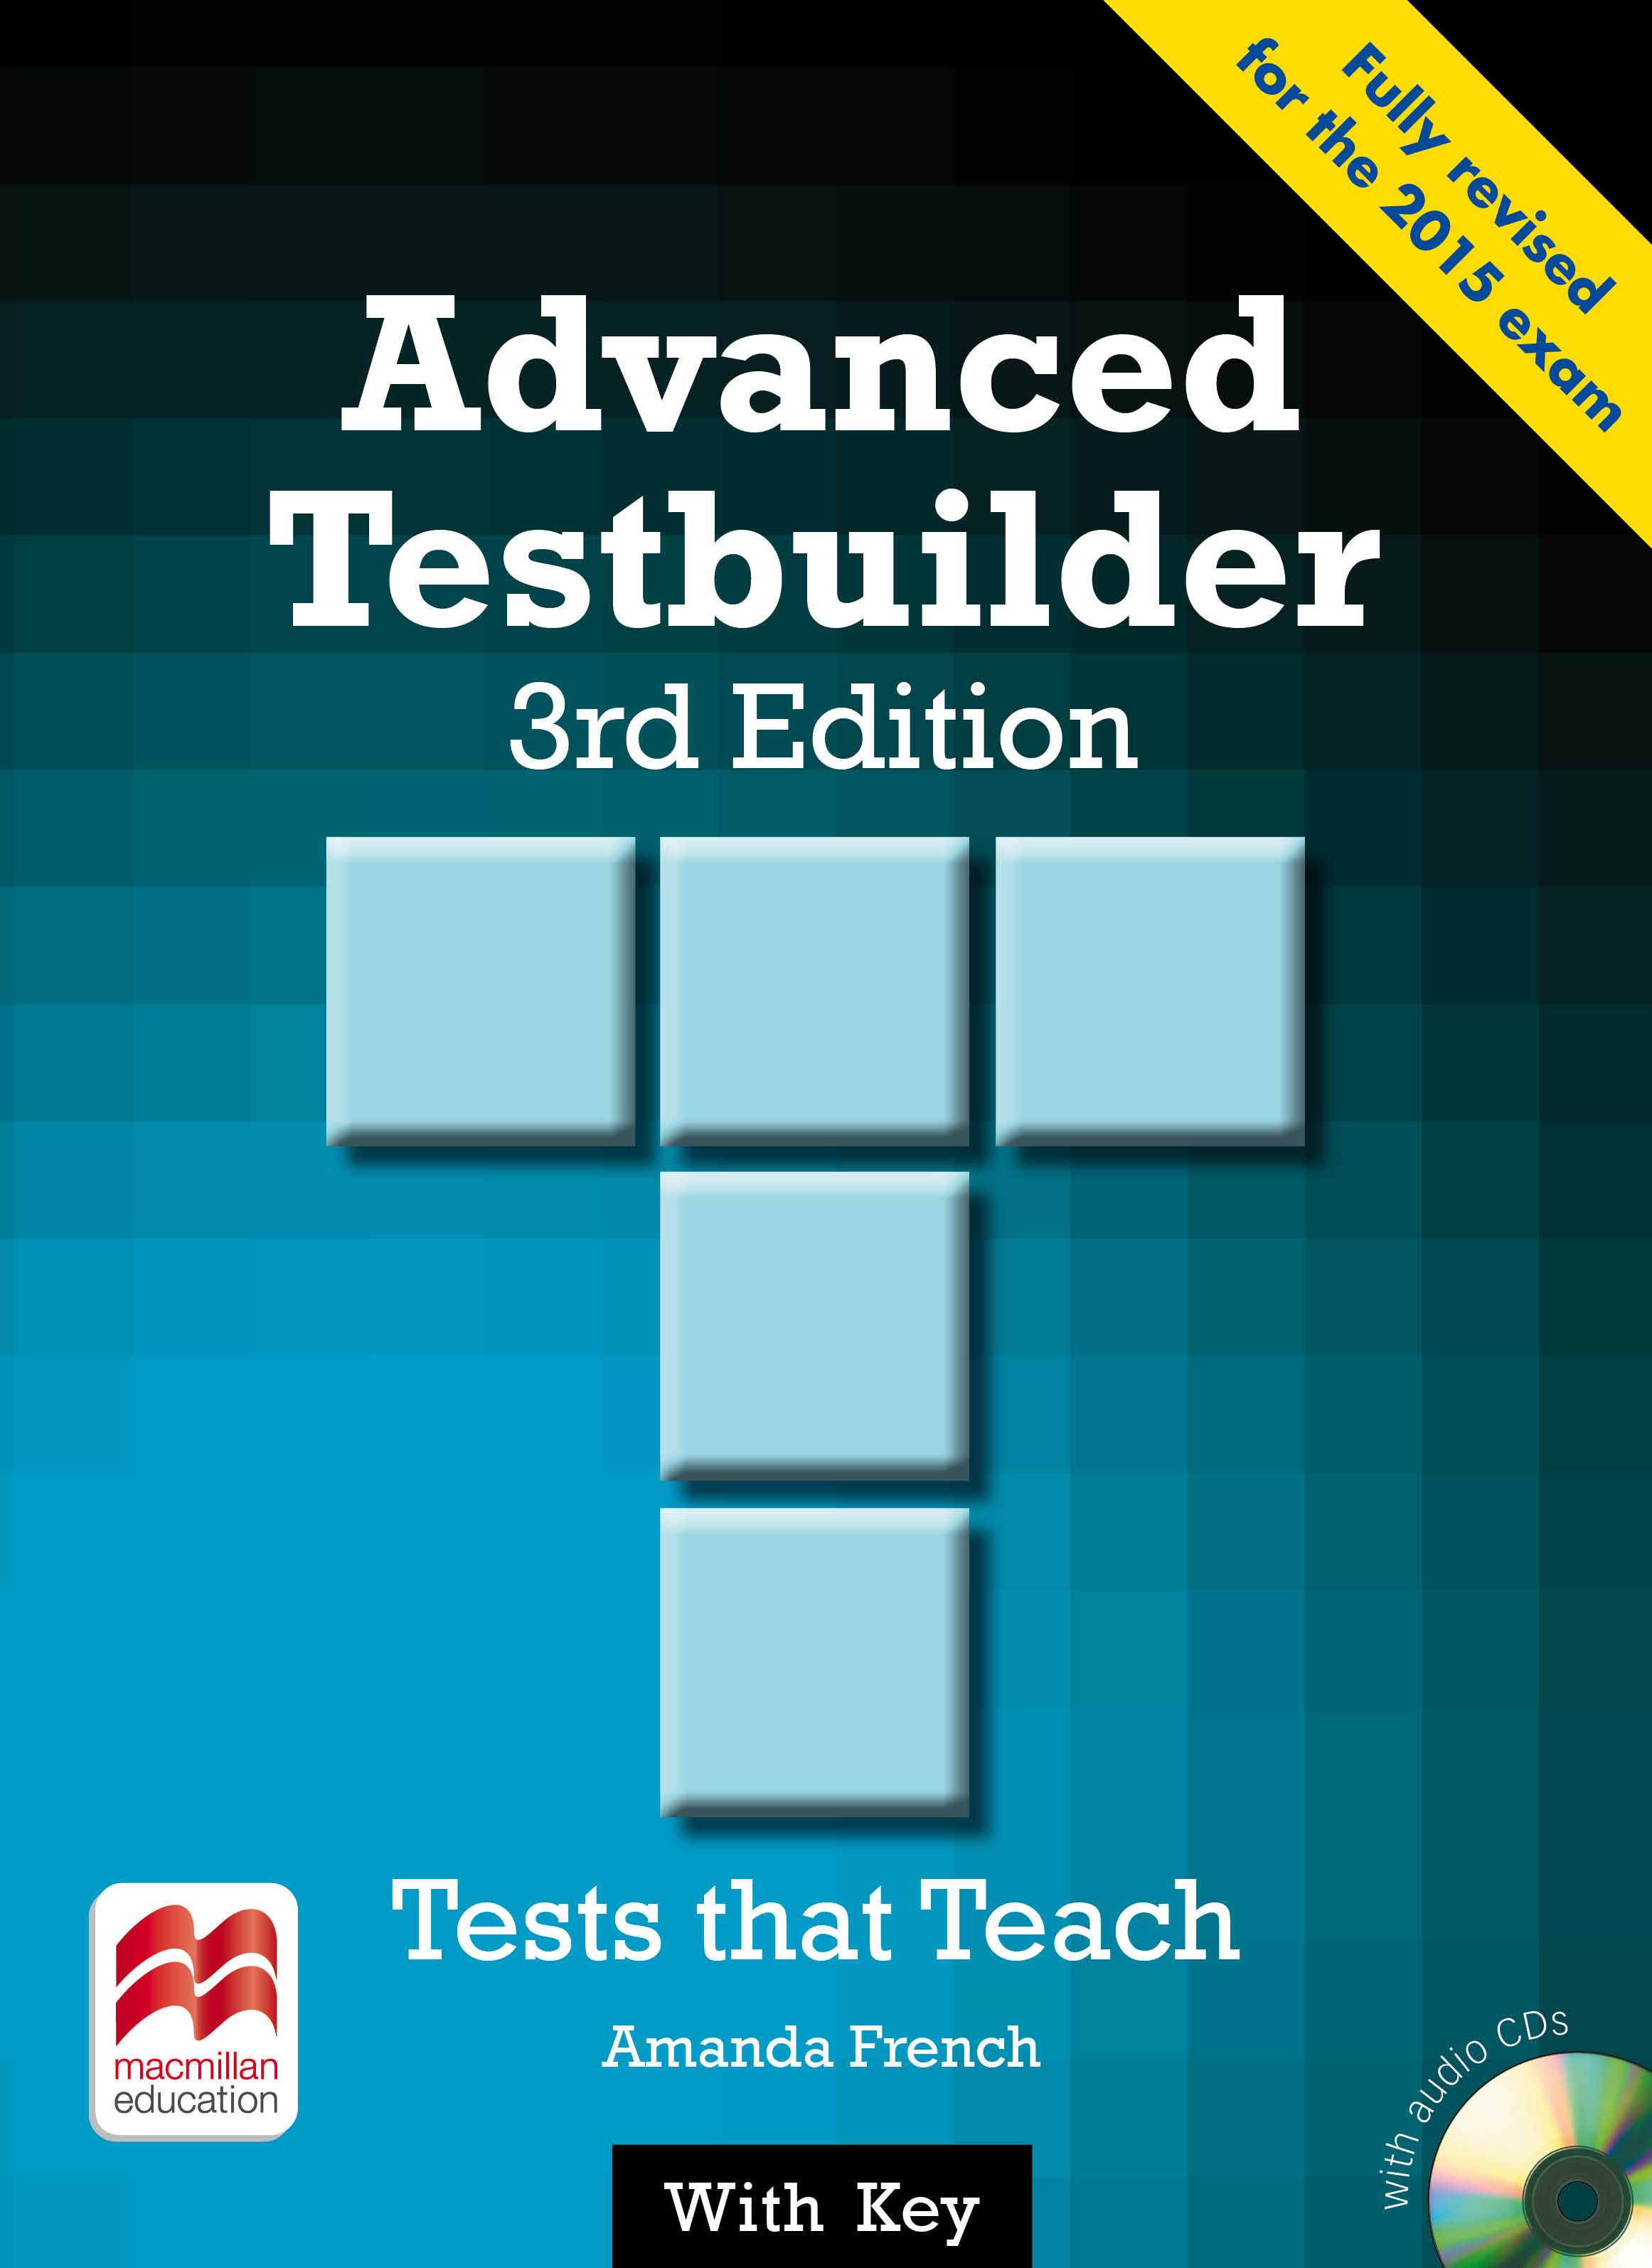 Advanced Testbuilder 3rd Edition Student